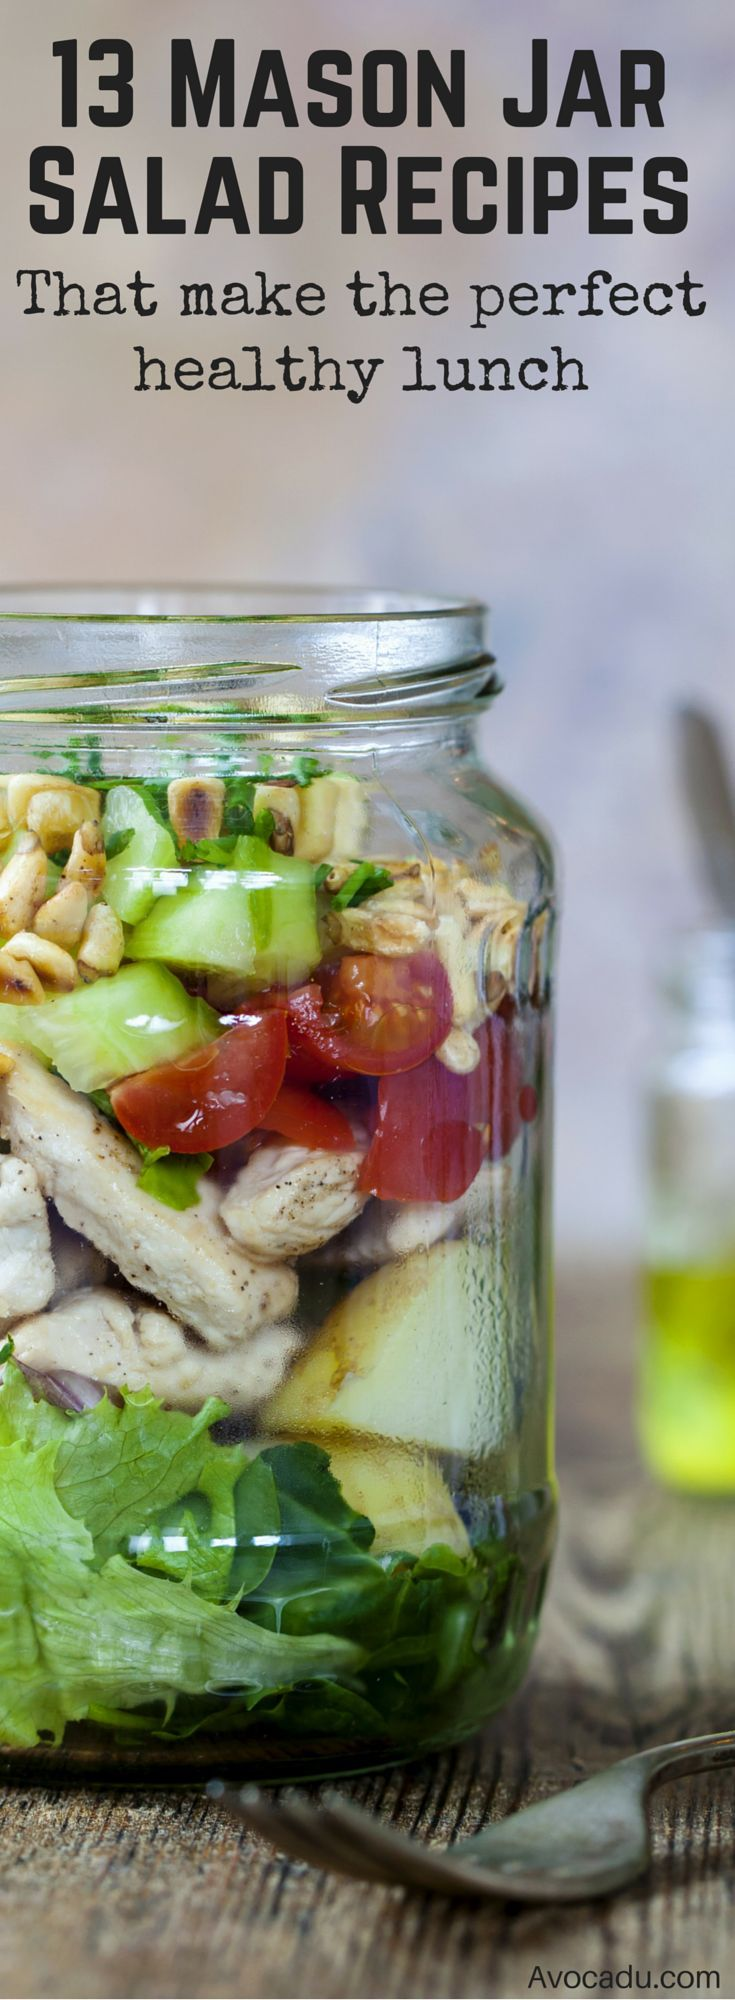 These mason jar salad recipes make perfect, on the go healthy lunches! They're a great addition to clean eating diets and can help expedite weightloss! Lose weight quick with these healthy recipes! http://avocadu.com/13-mason-jar-salads-that-make-perfect-healthy-lunches/